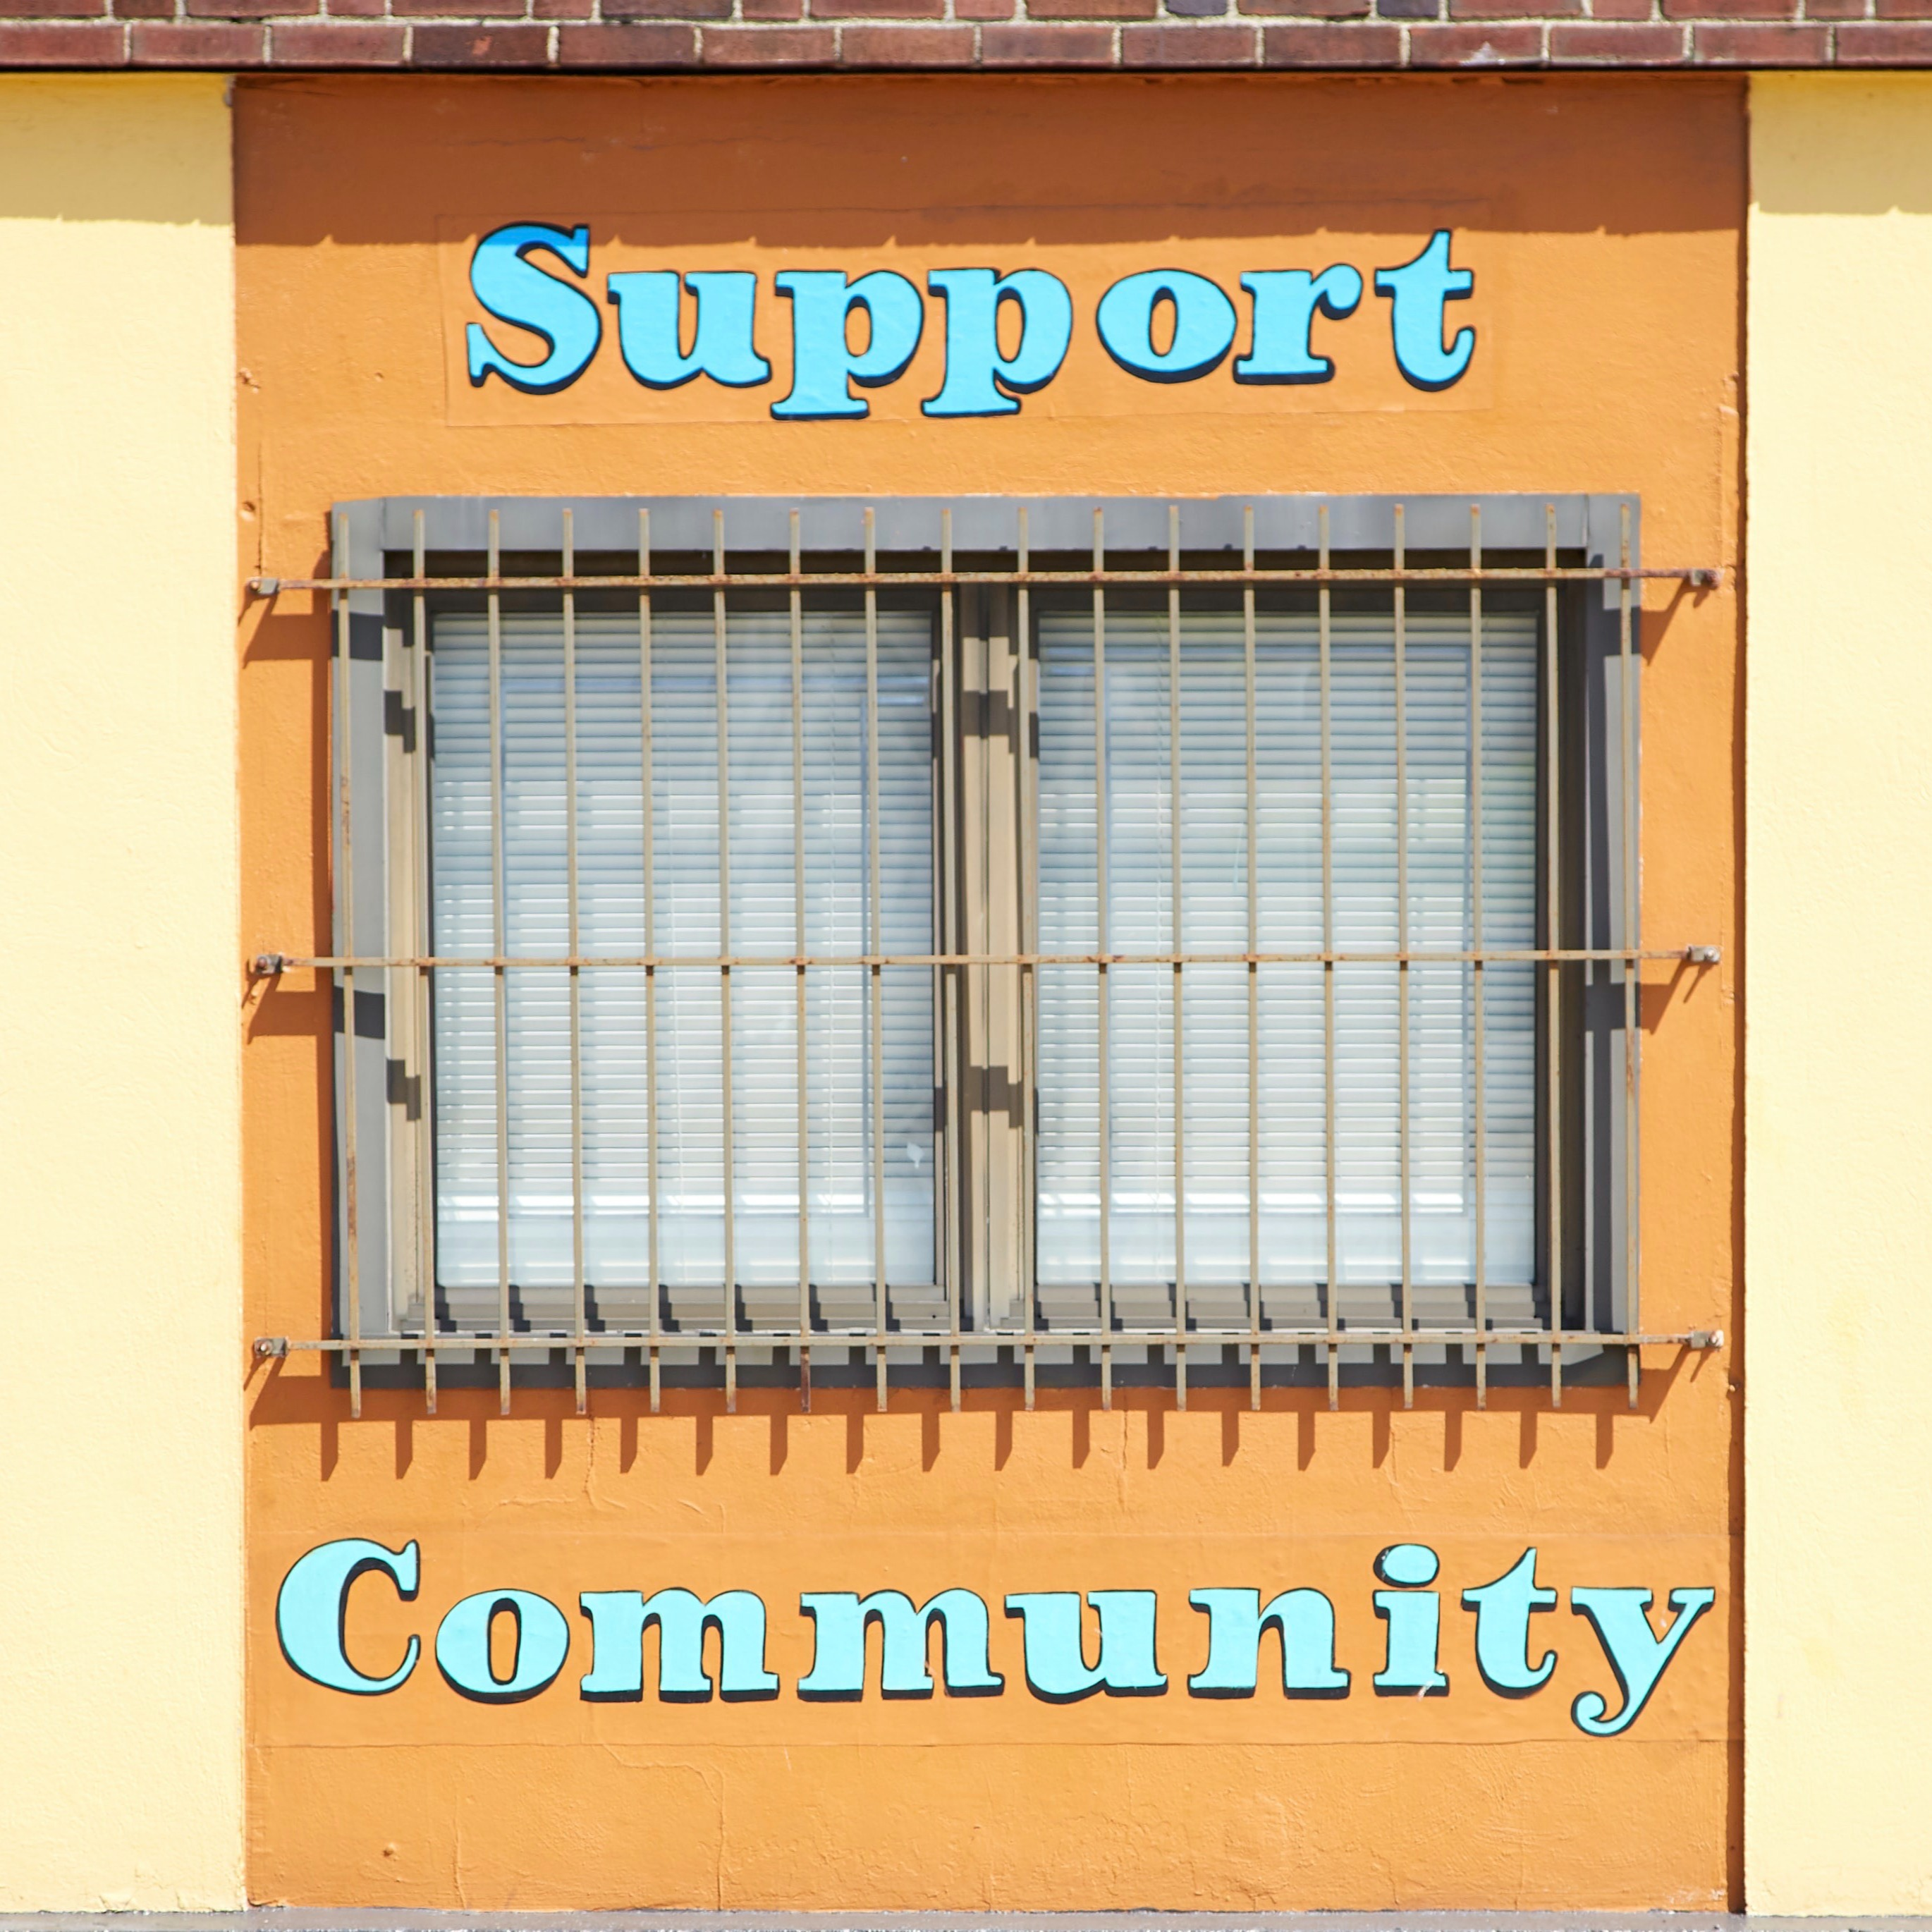 Support community-1